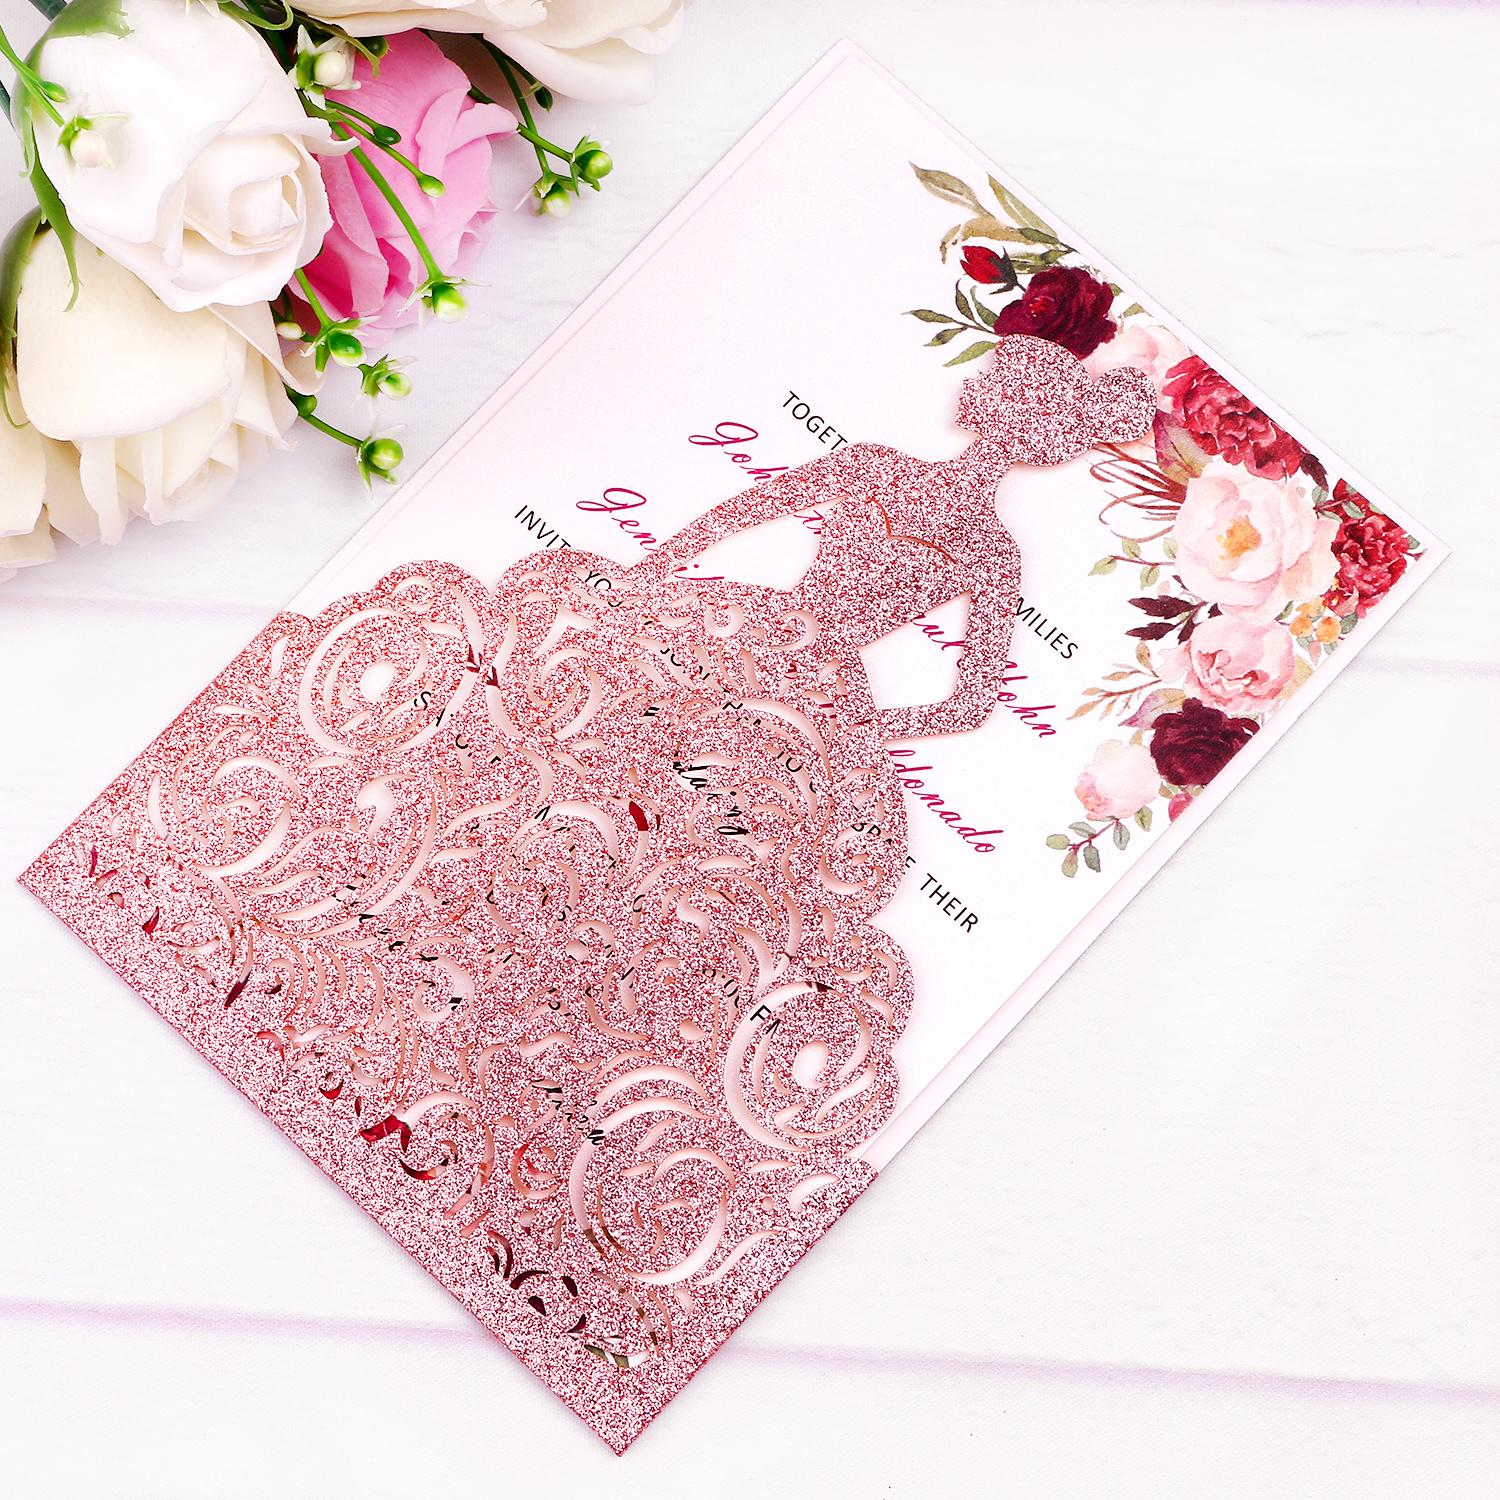 New Arrival Rose Gold Glitter Laser Cut Crown Princess Invitations Cards For Birthday Sweet 15 Quinceanera Sweet 16th Engagement Invites